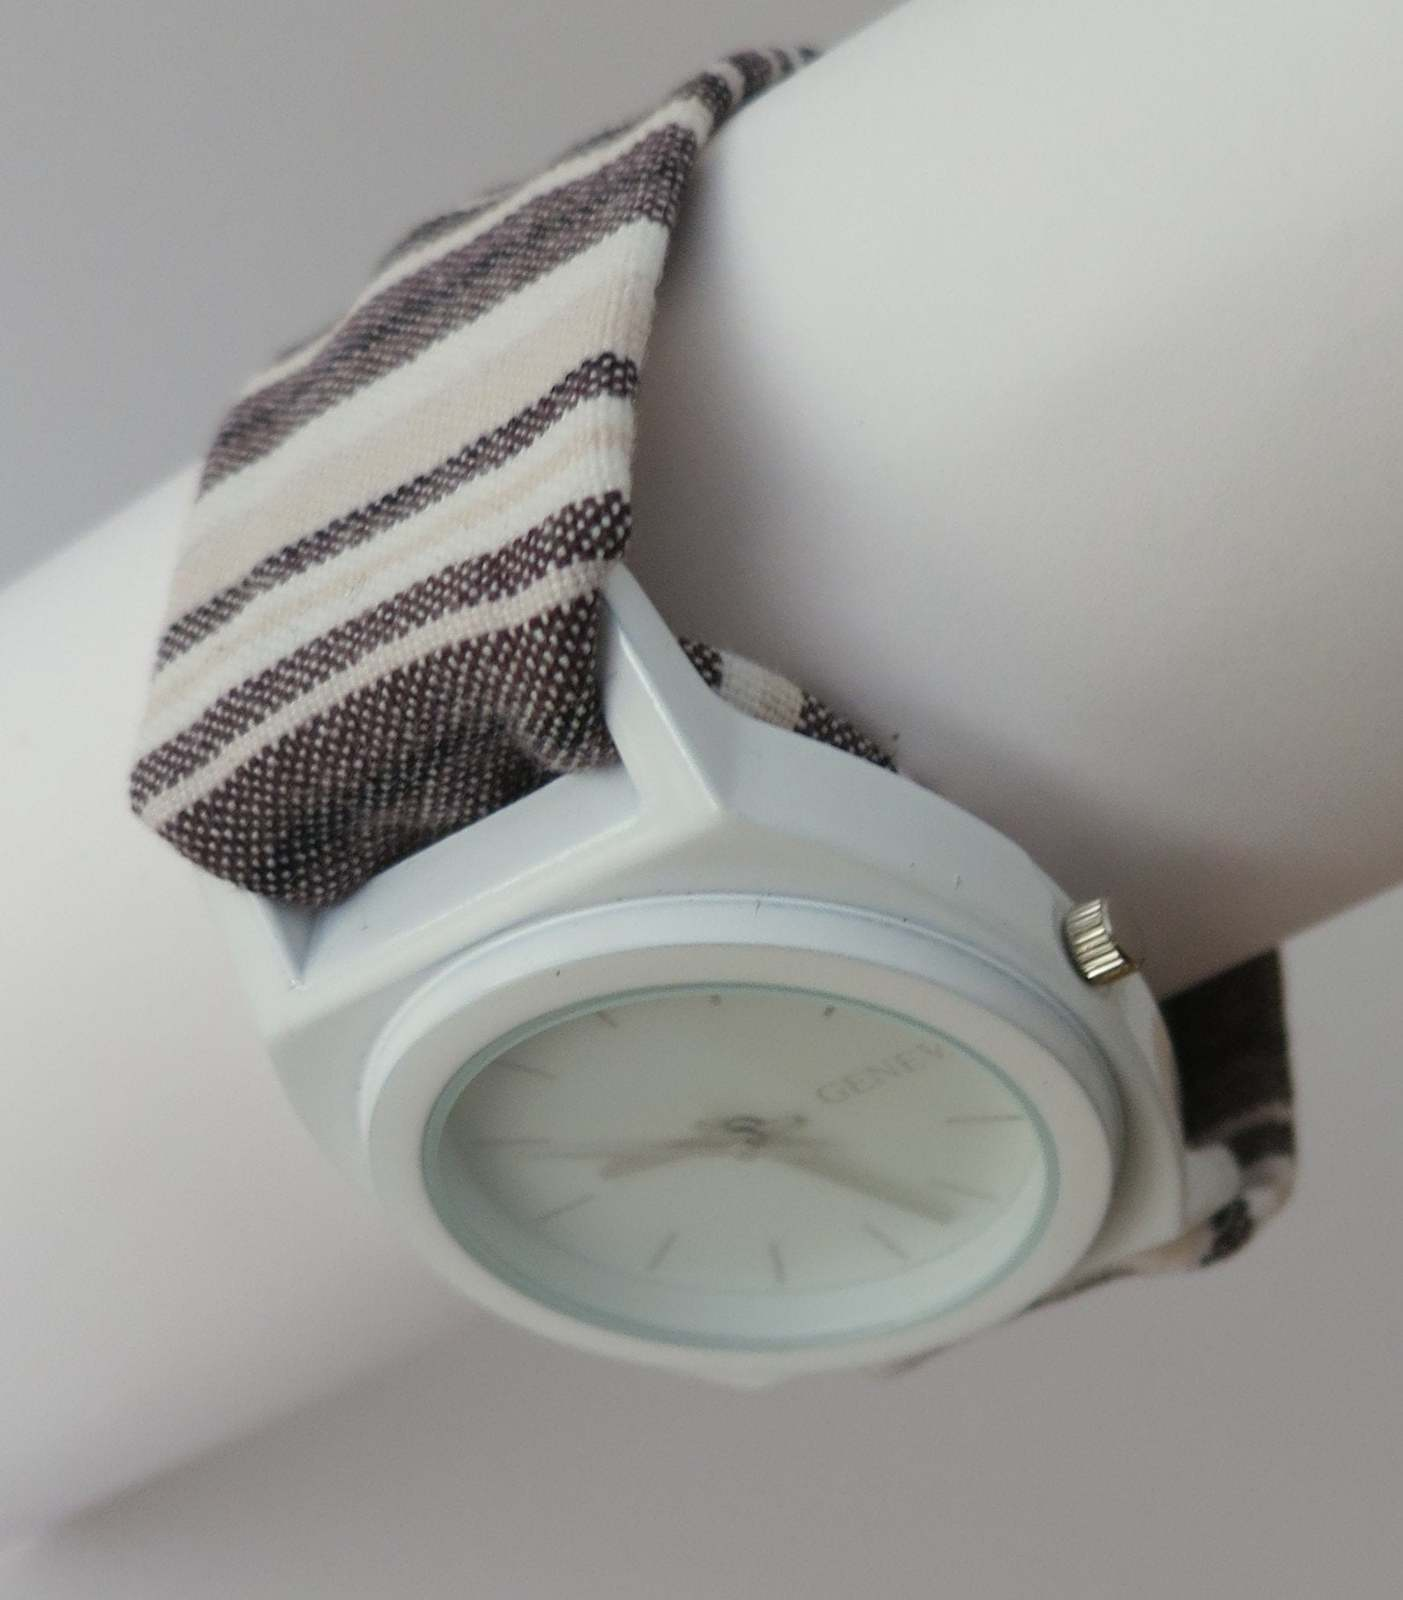 Oversized watch for woman, boyfriend style watch, unusual watch with two bands